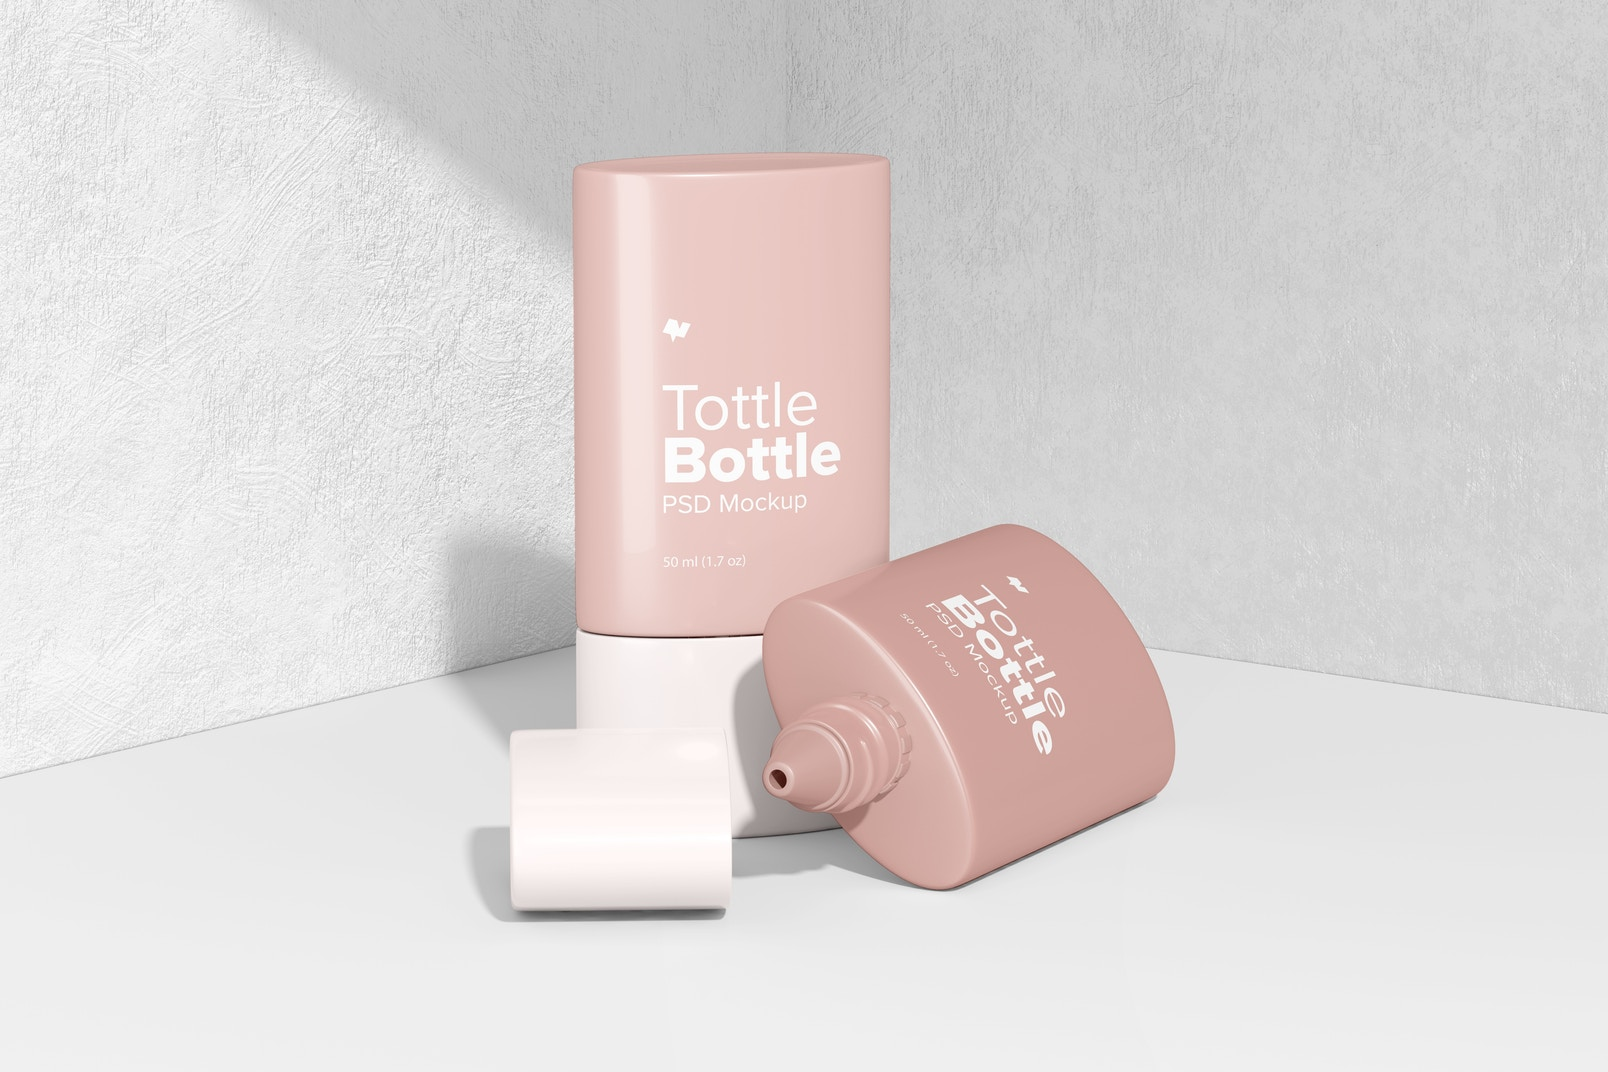 Tottle Bottles Mockup, Opened and Closed